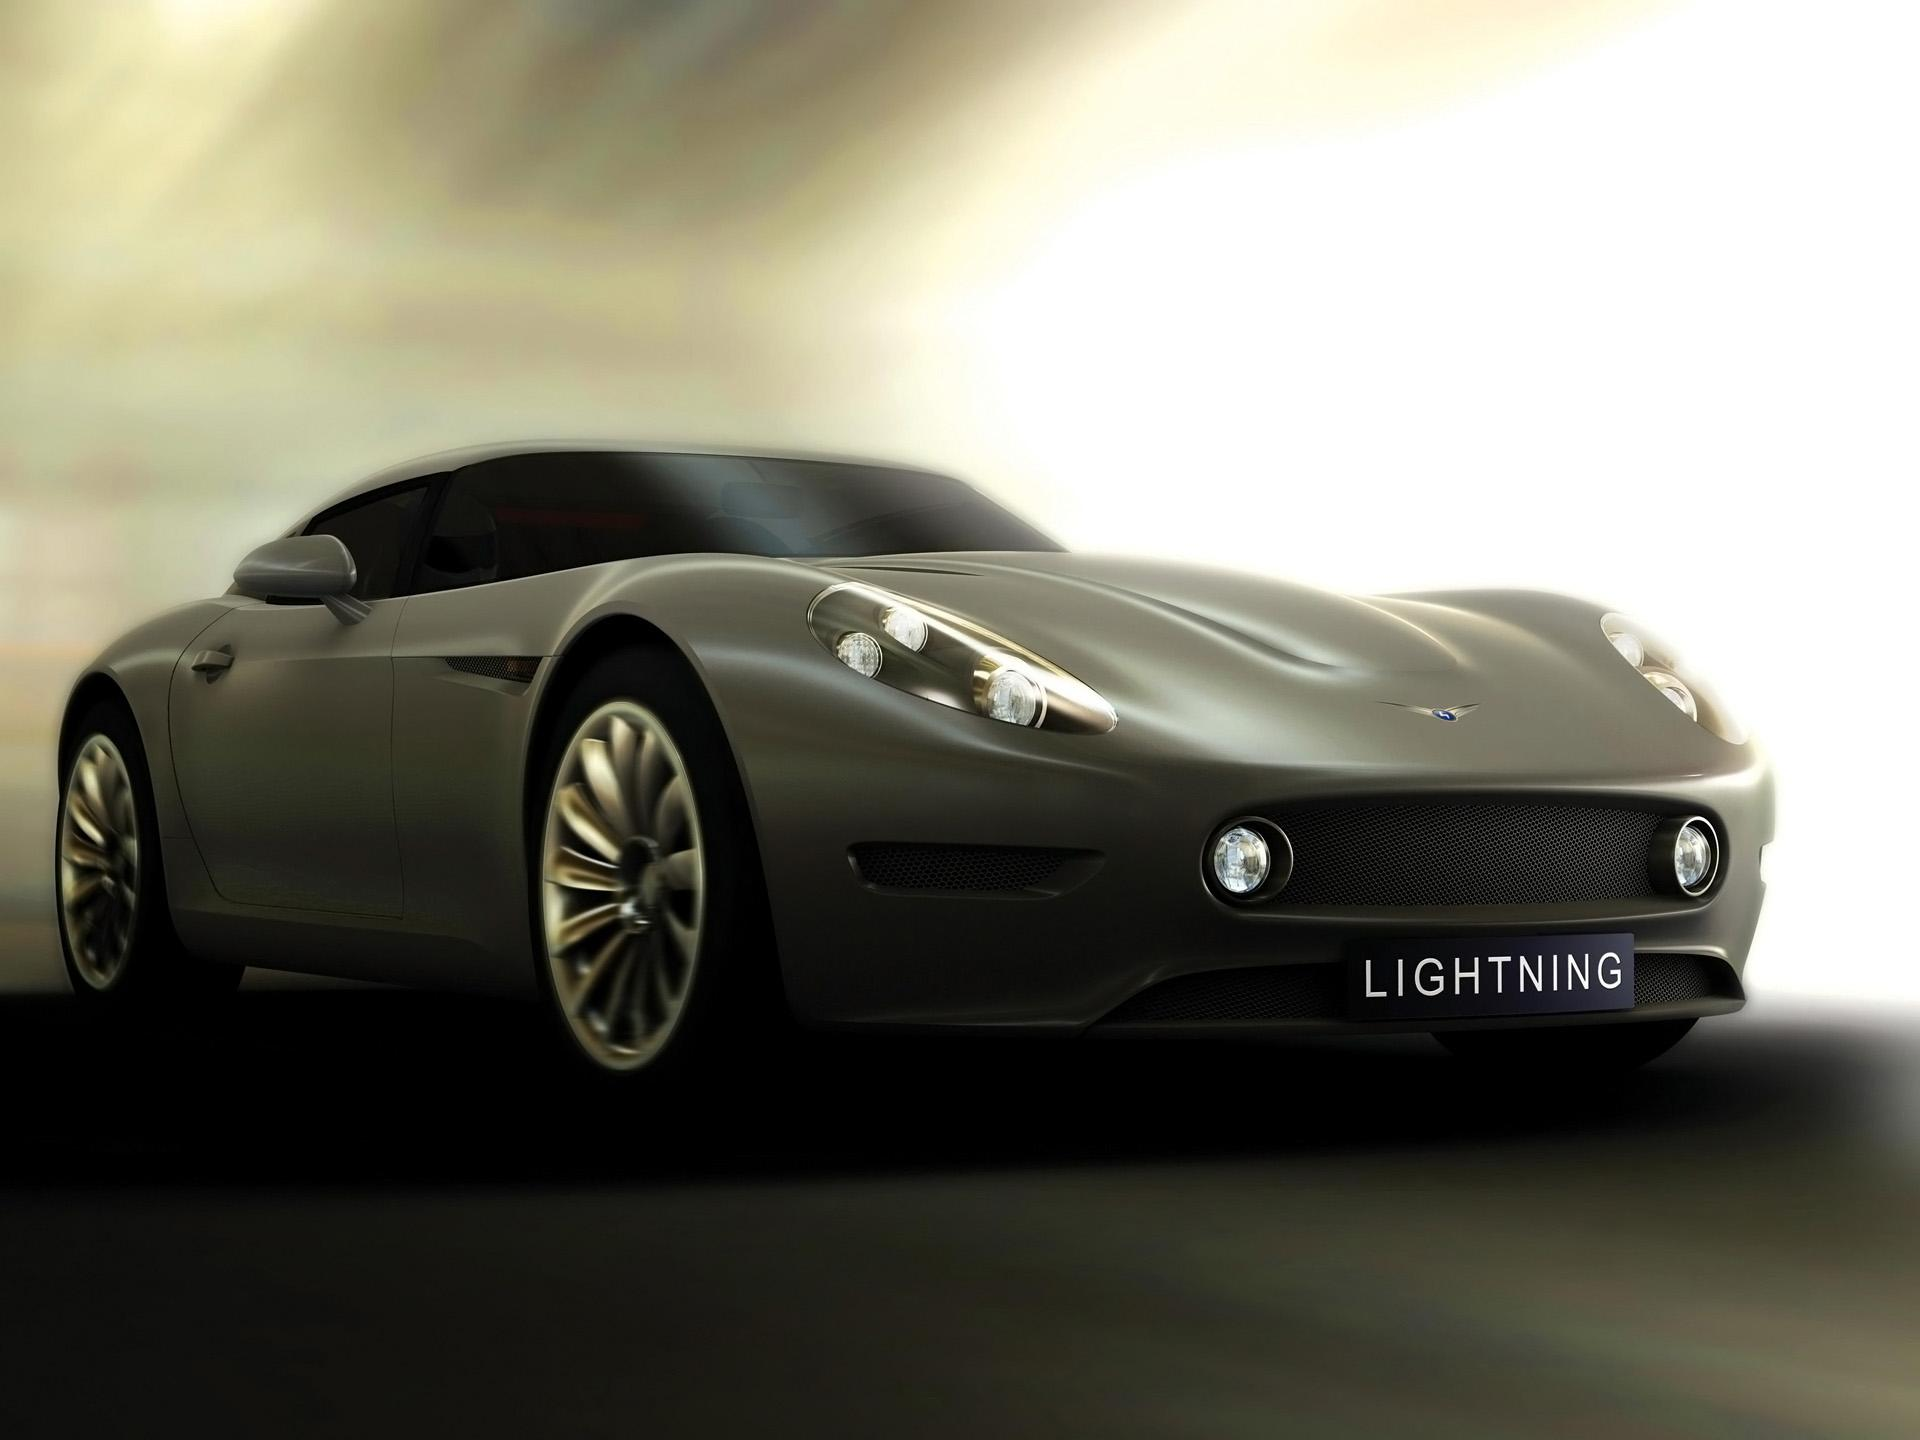 Electric Cars Information 2011 Lightning Gt News And Information Conceptcarz